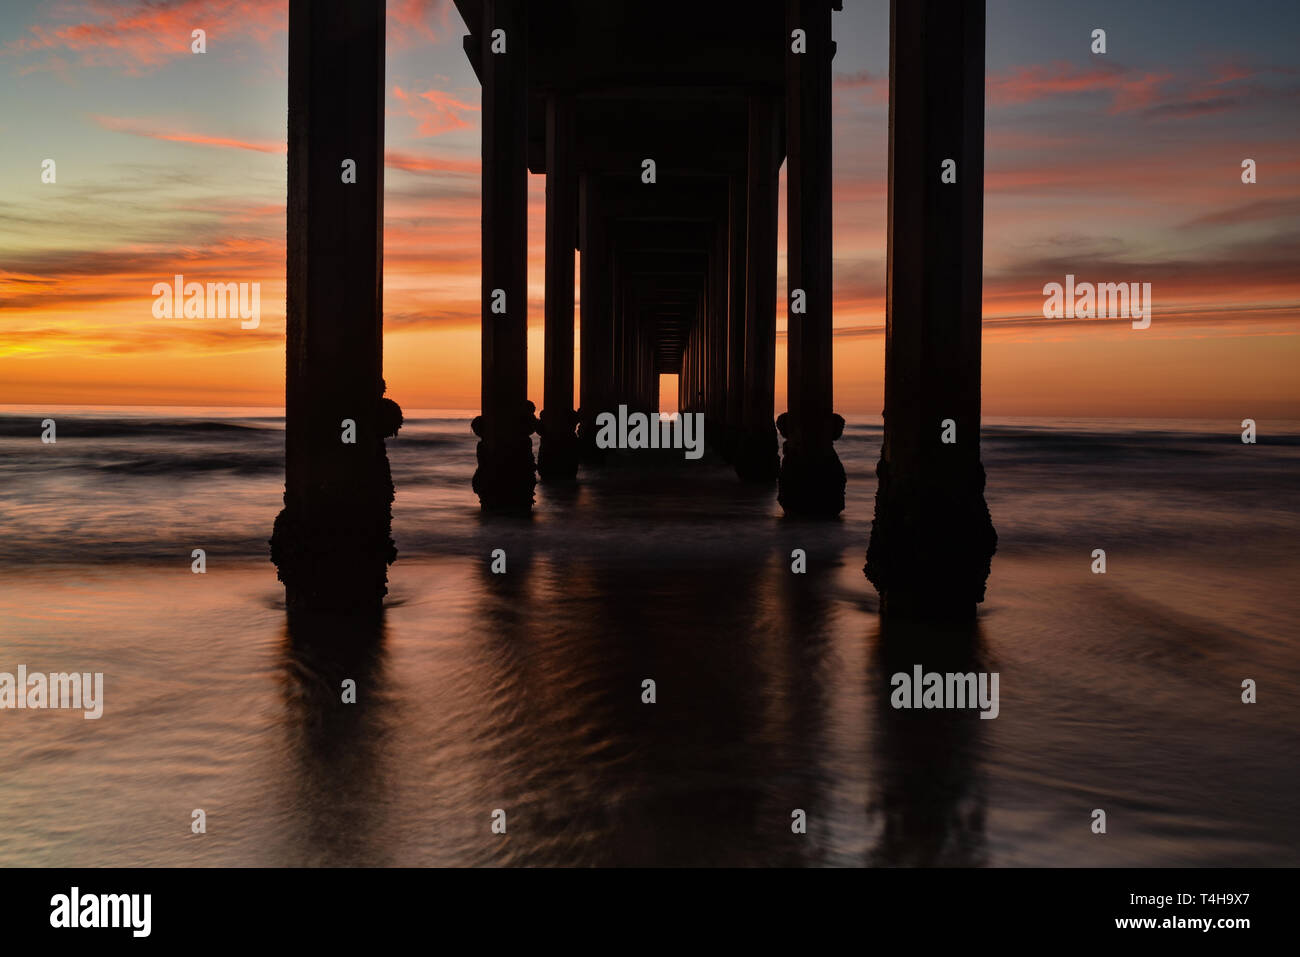 Brilliant sunset with drifting colorful clouds with a silhouette of the cement Scripps Pier with the tide coming in, La Jolla, San Diego, CA, USA. Stock Photo